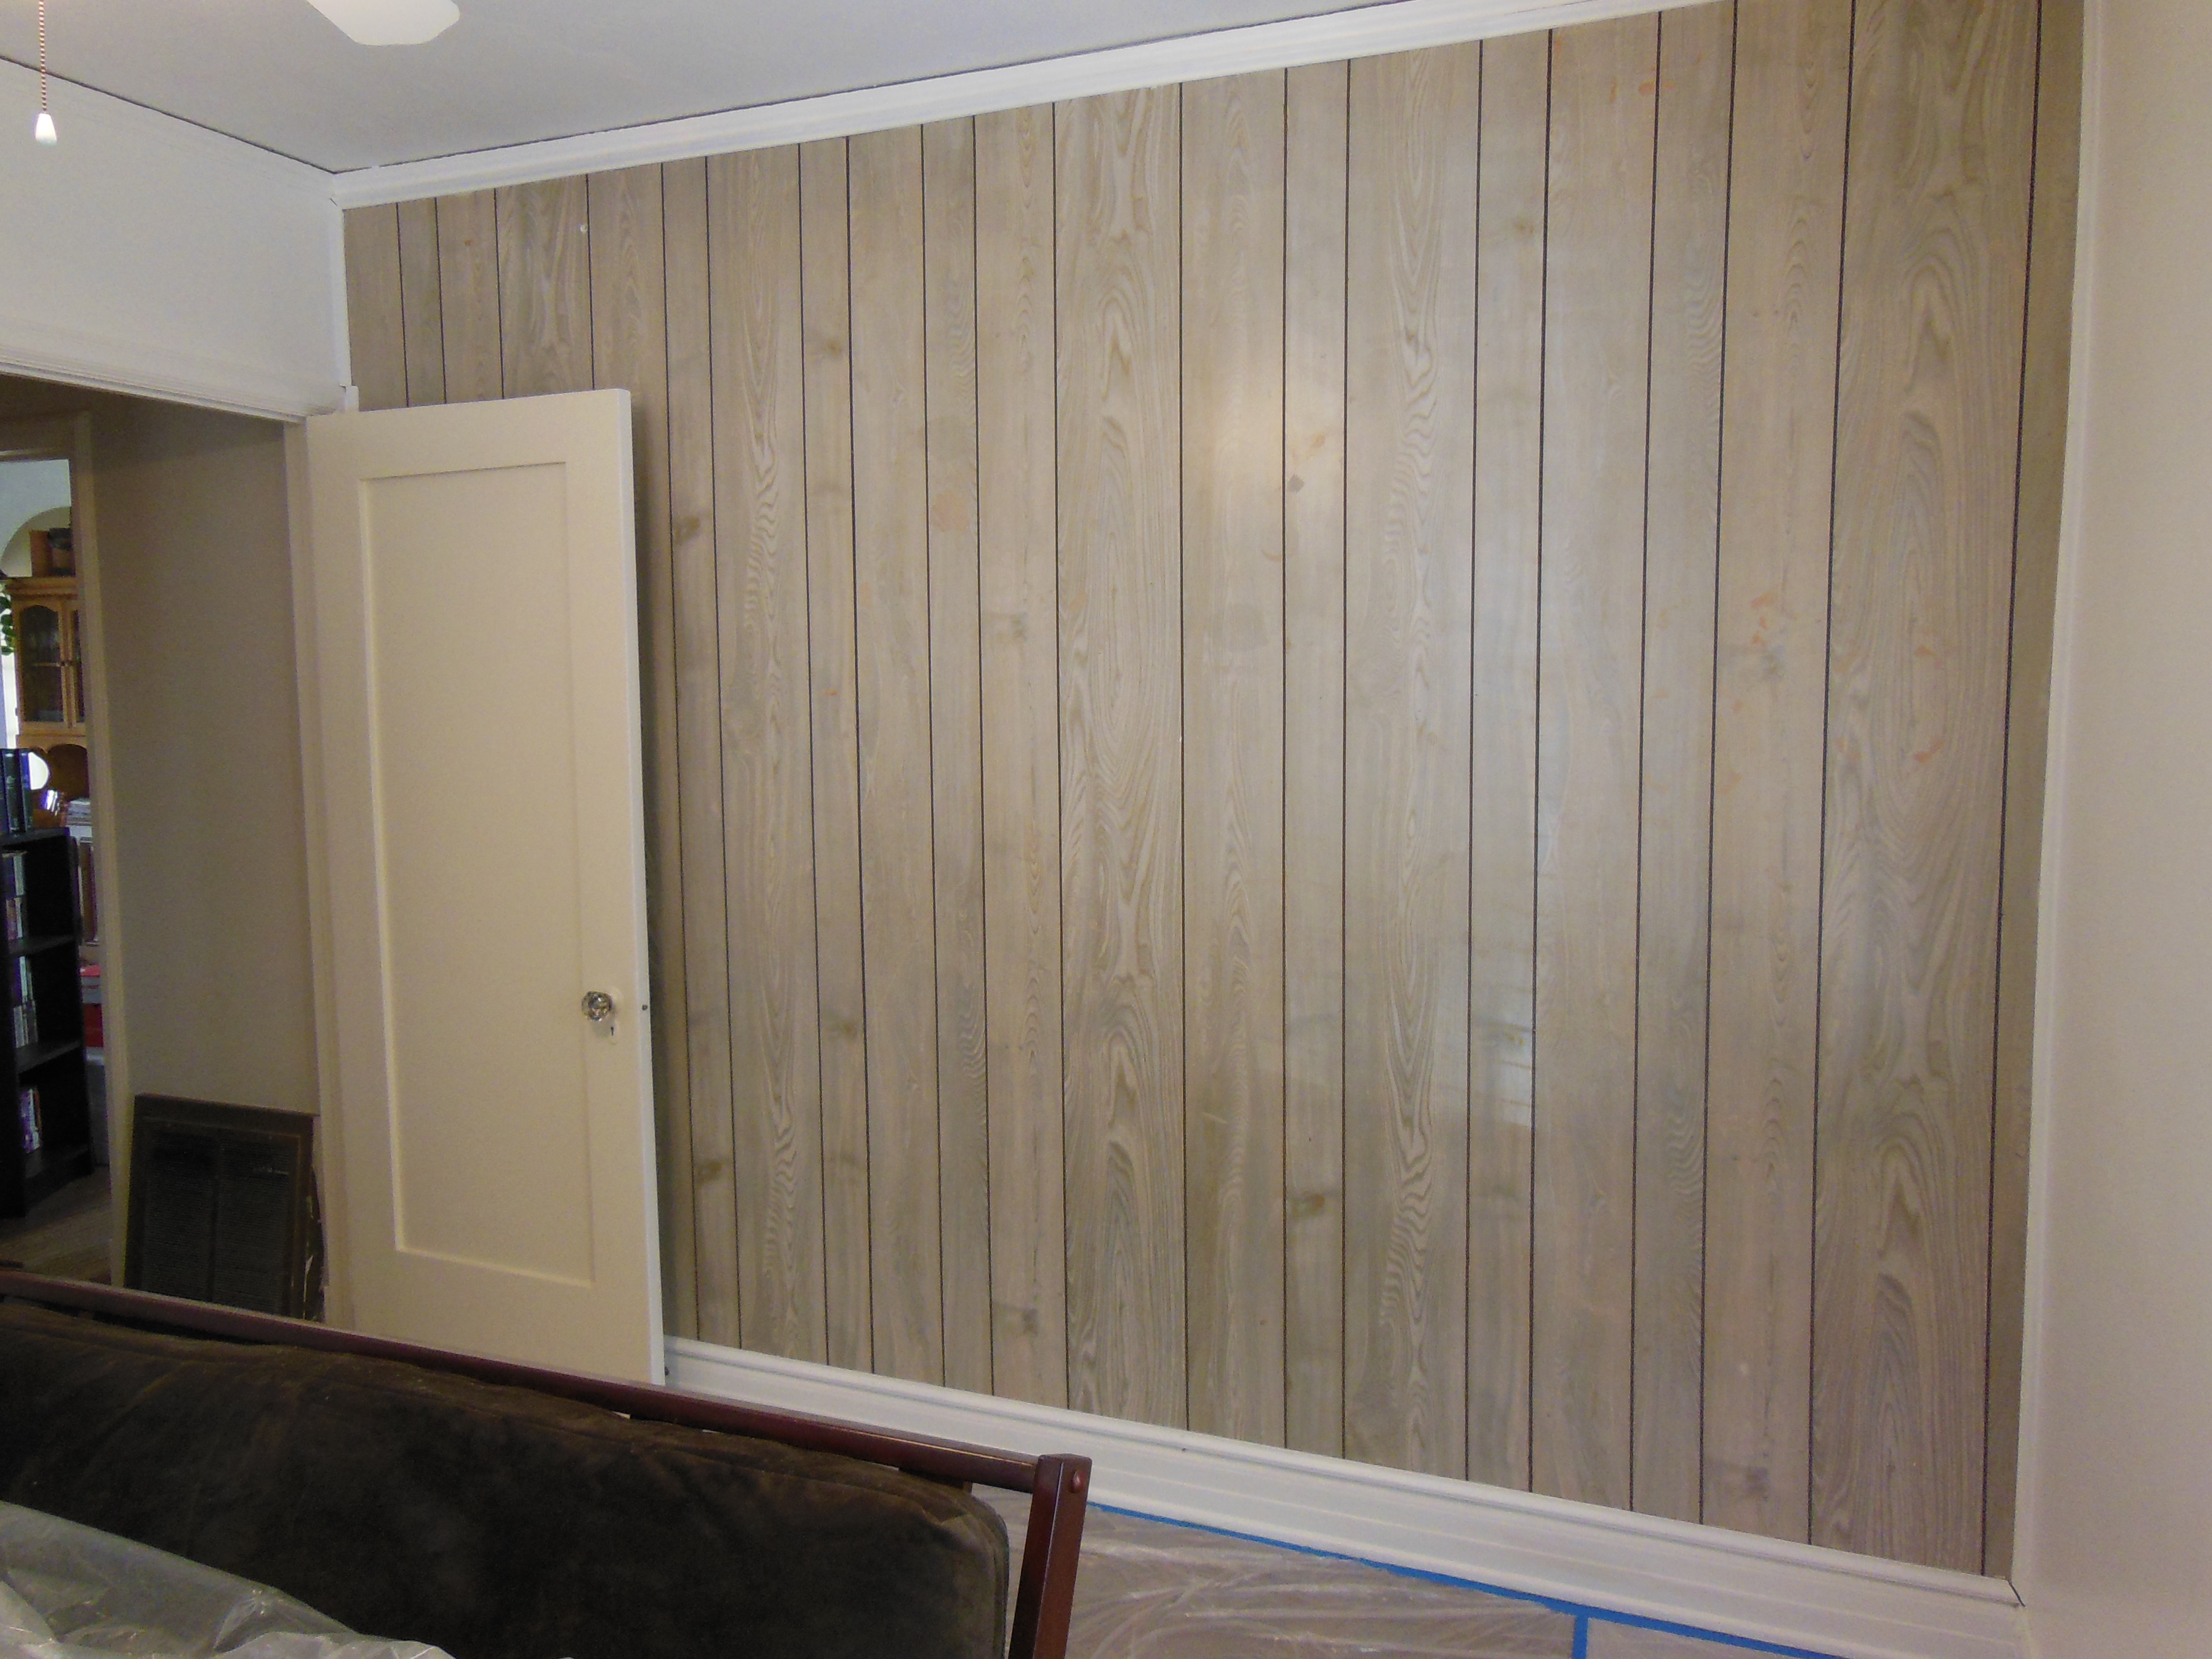 Old Wall Paneling : Paneled walls aren t a death sentence sledgehammer with